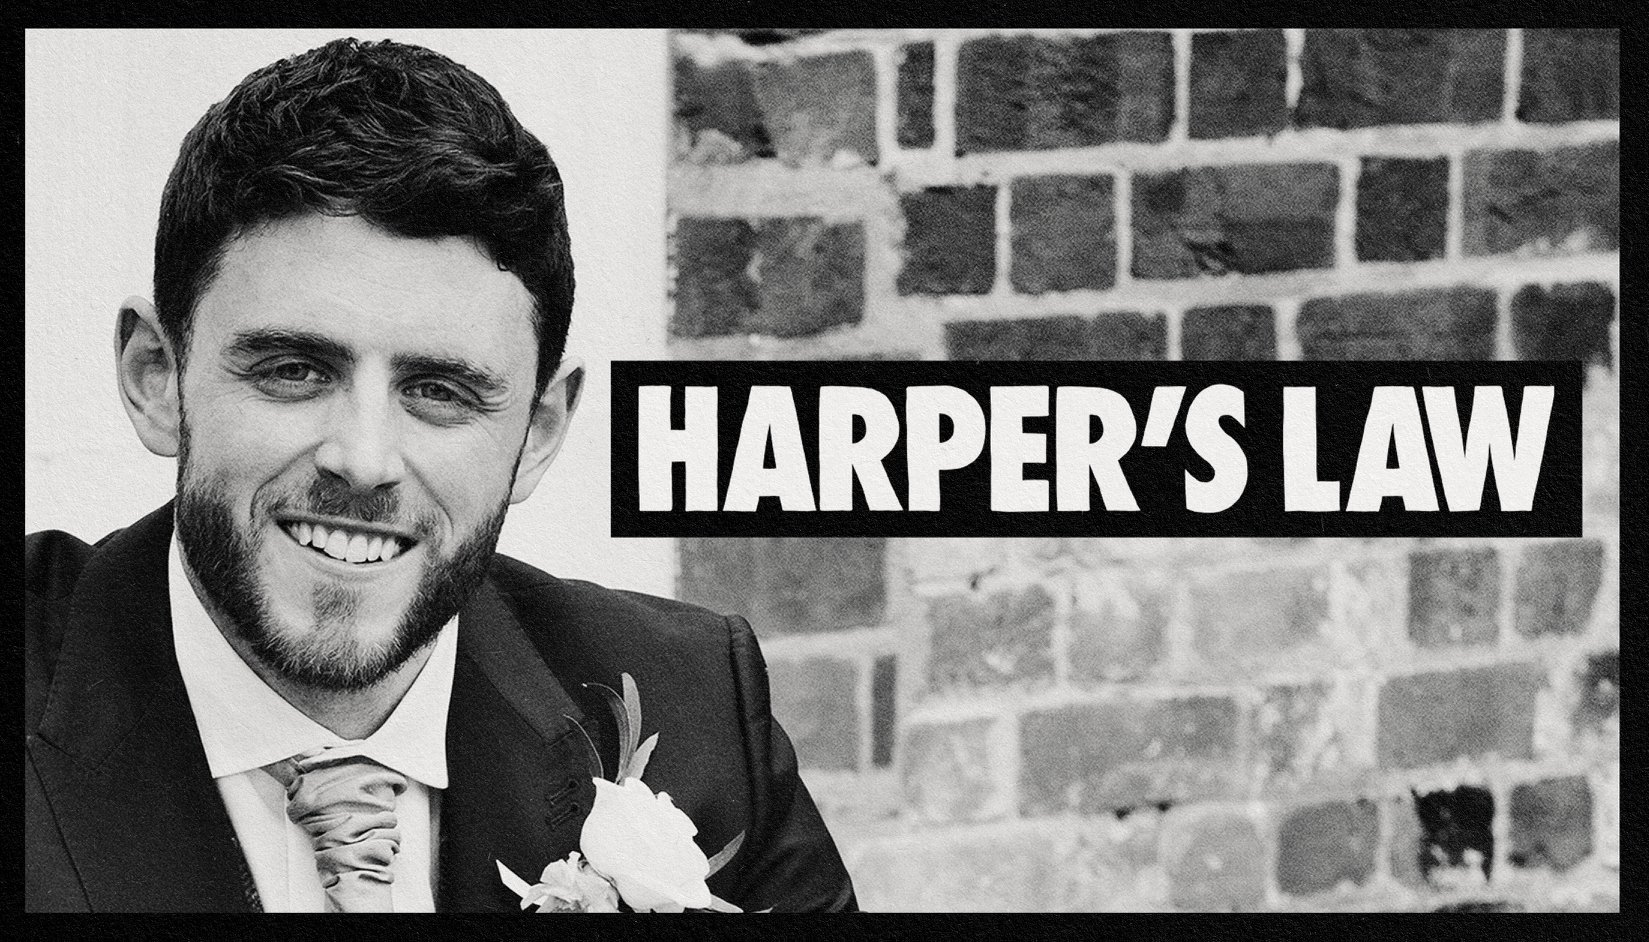 Hampshire Police Federation in full support of Harper's Law campaign